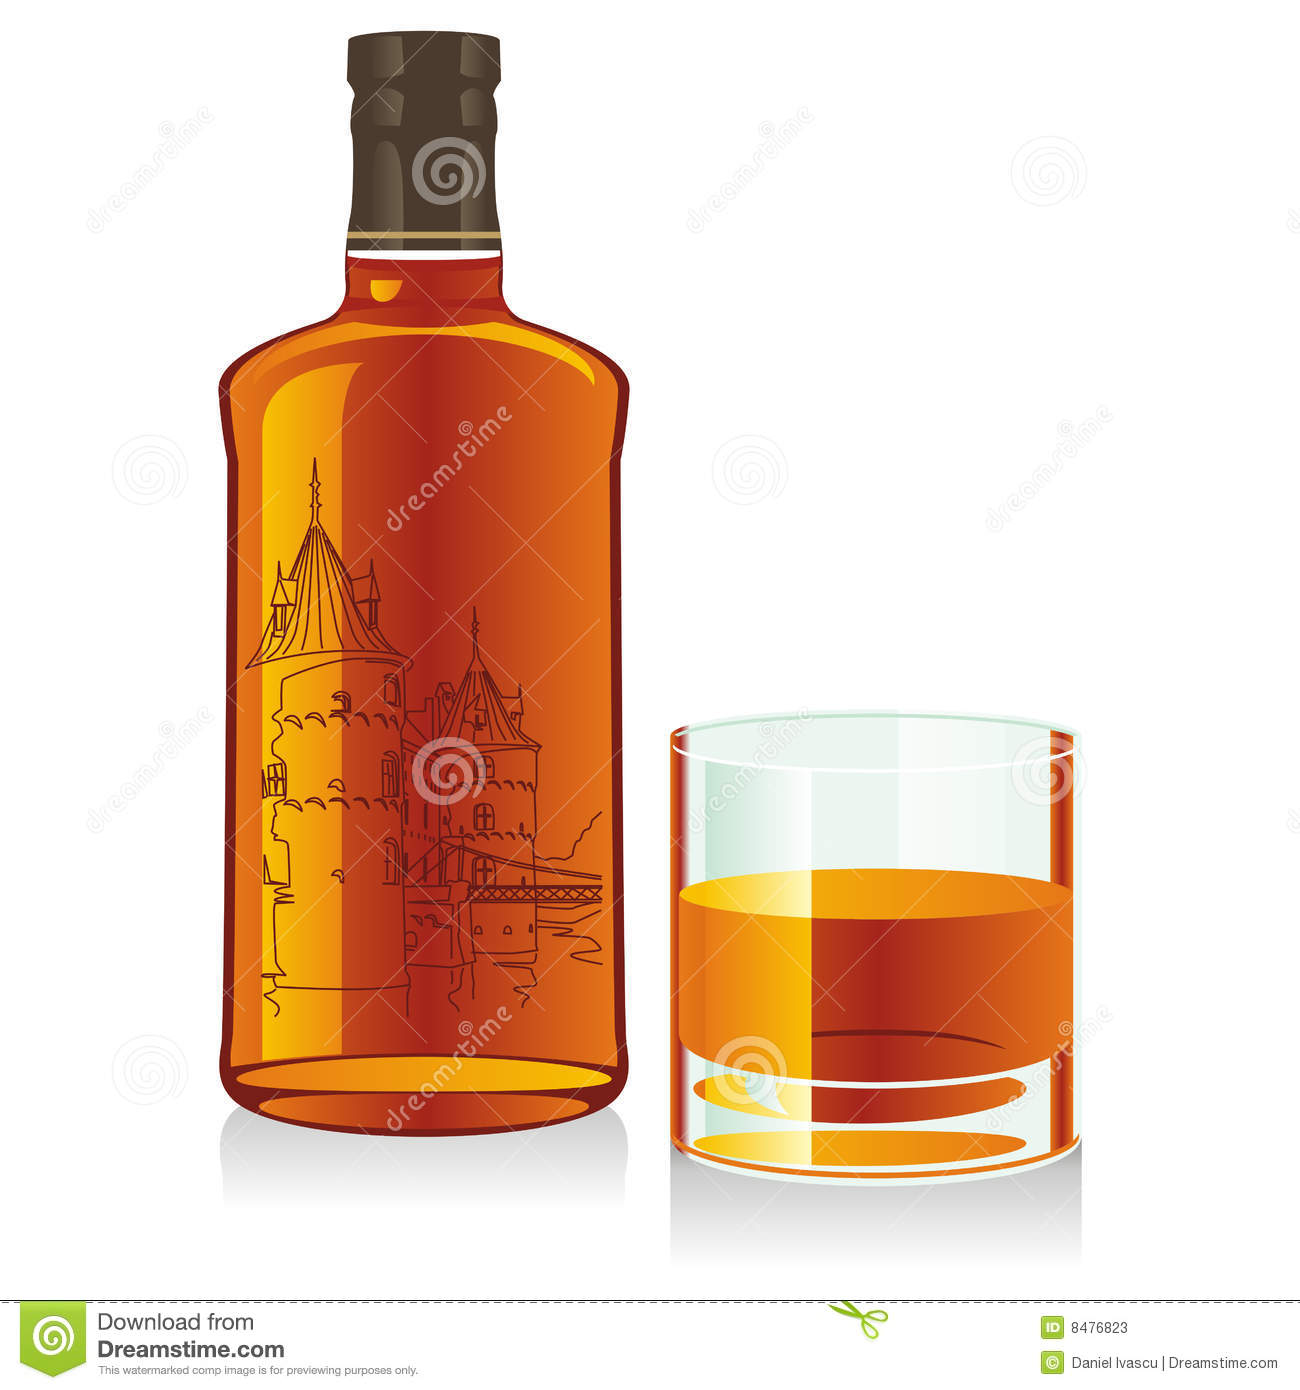 Whiskey Bottle And A Whiskey Glass Royalty Free Stock ... |Whisky Bottle With Glass